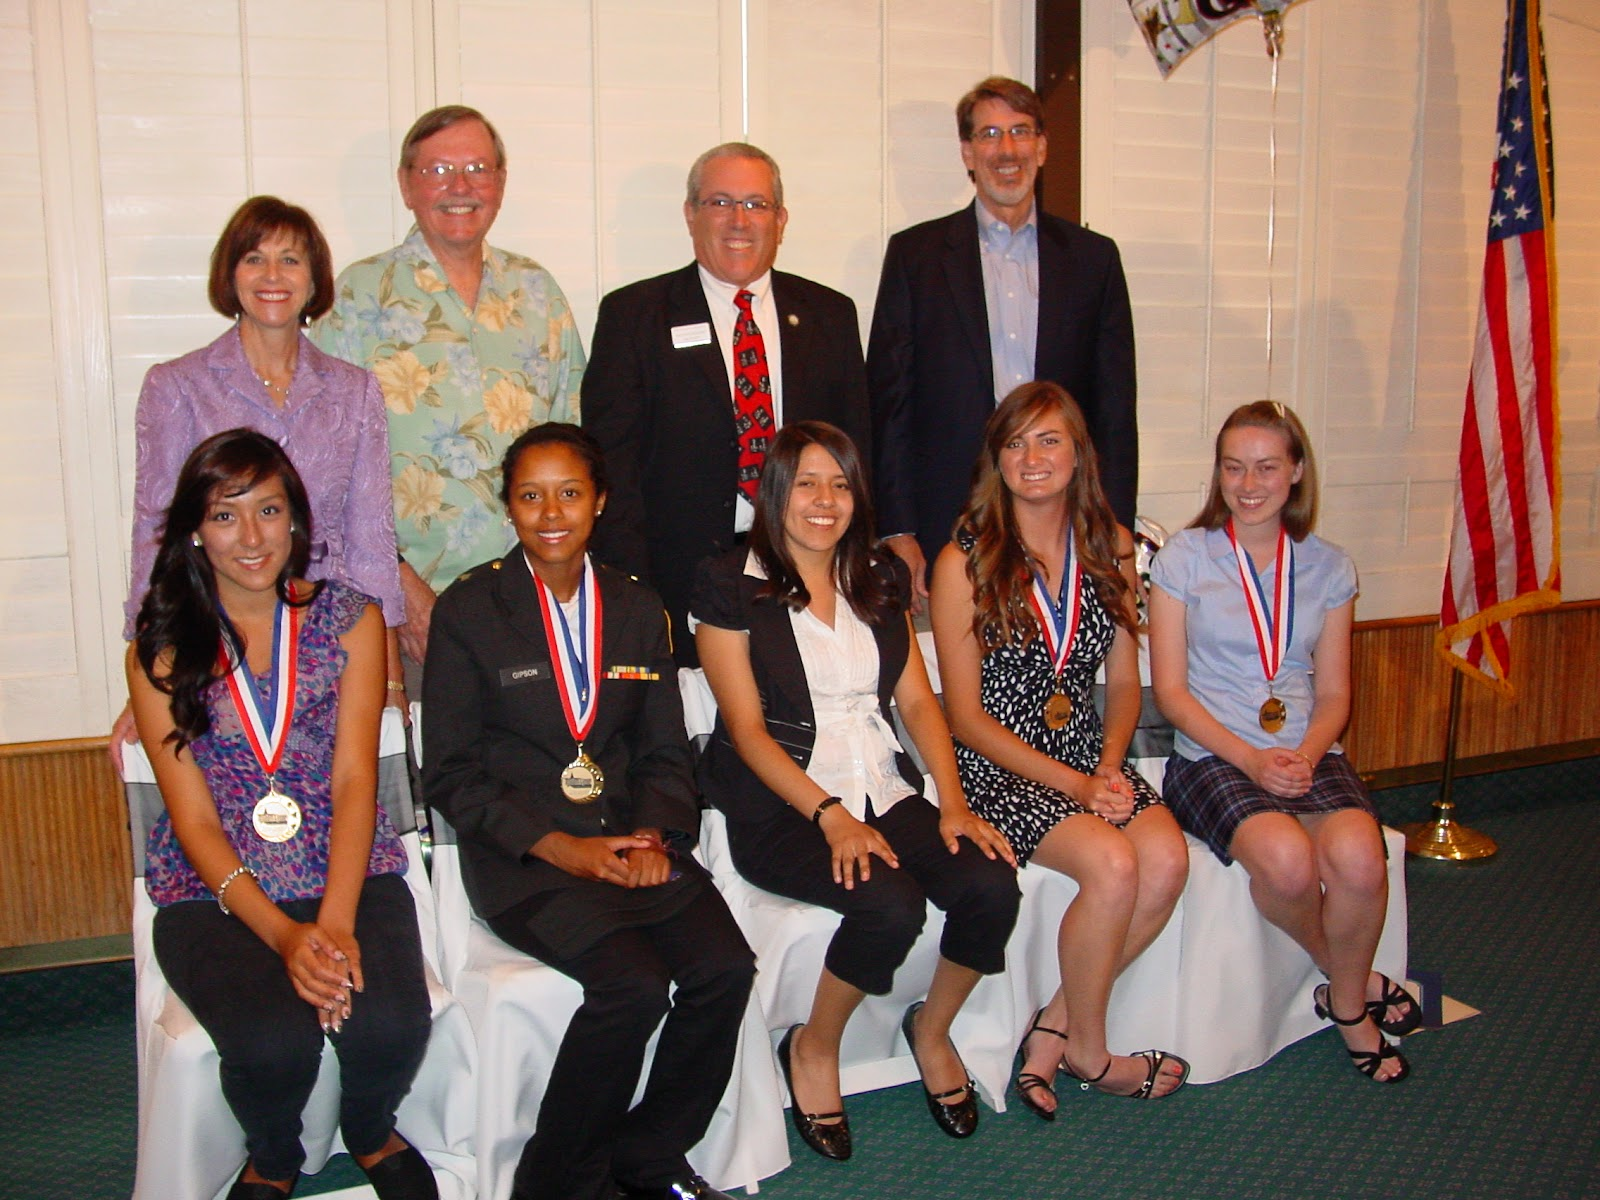 american planning associations high school essay contest American planning association high school essay contest mies van der rohe essay camus essays dawidowicz intentionalist essay, essayer differente couleur de cheveux essay everything you need to know about how to write a great essay plan.